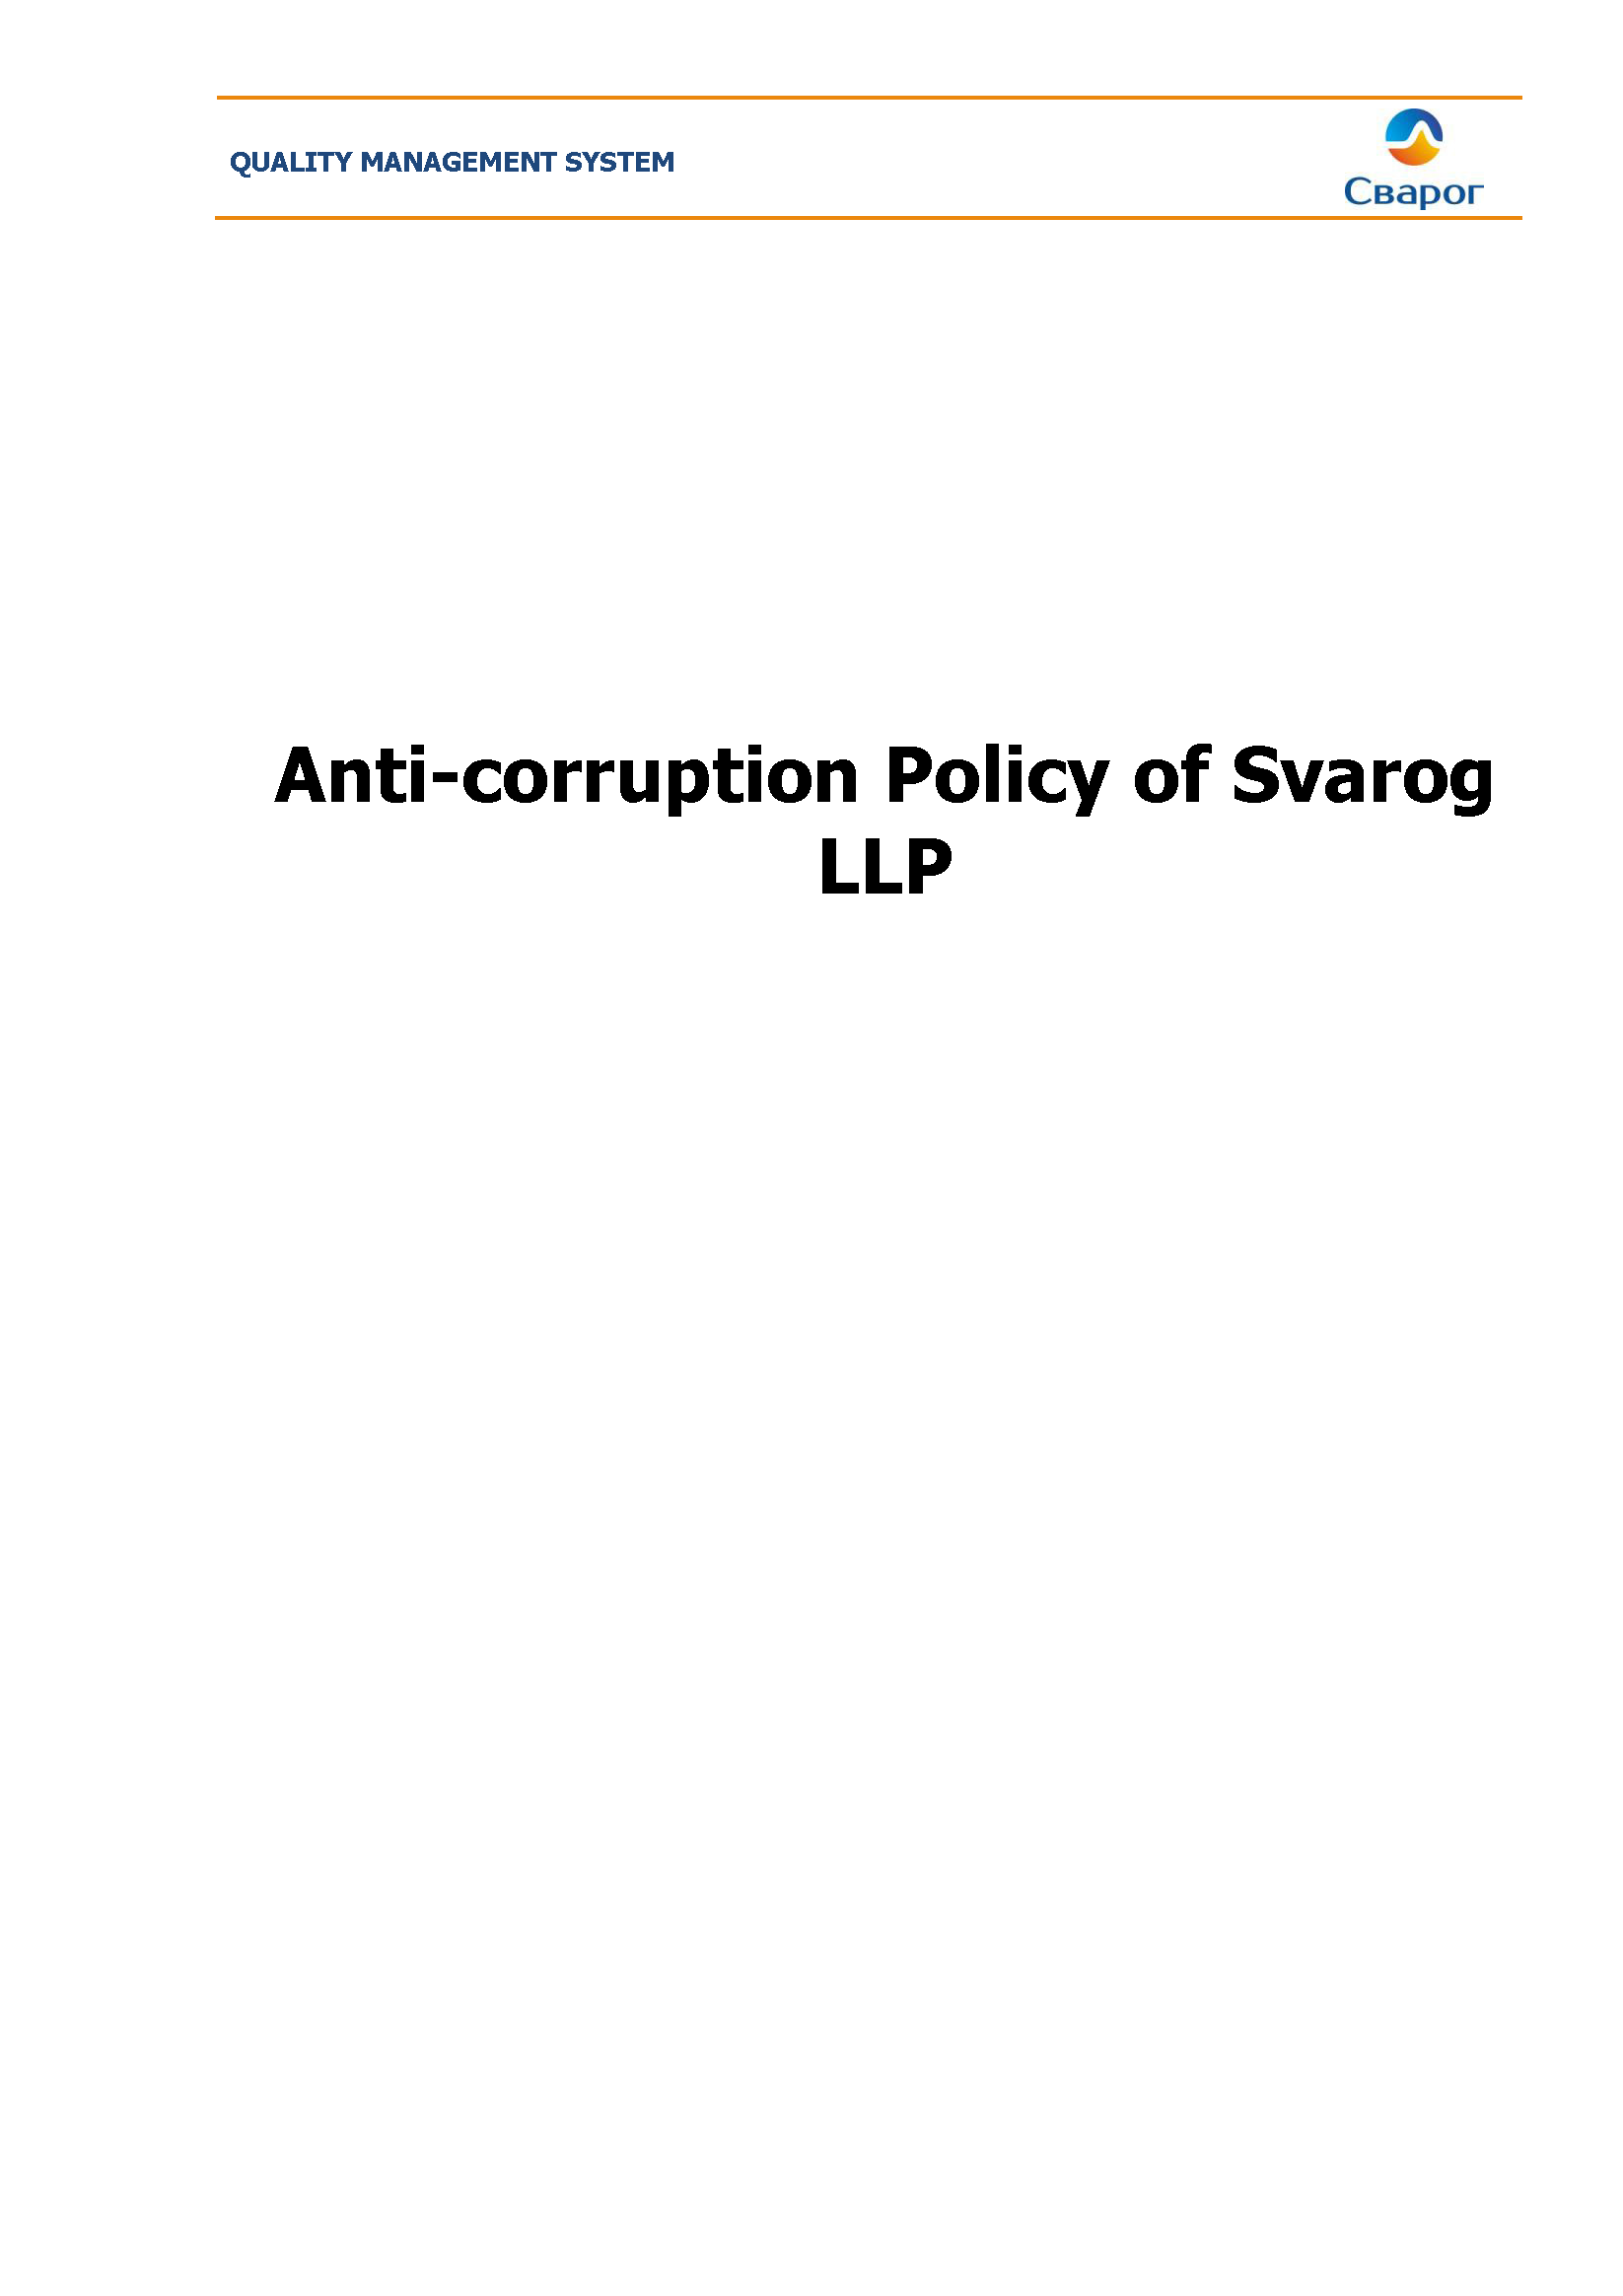 Anti-corruption Policy of Svarog LLP